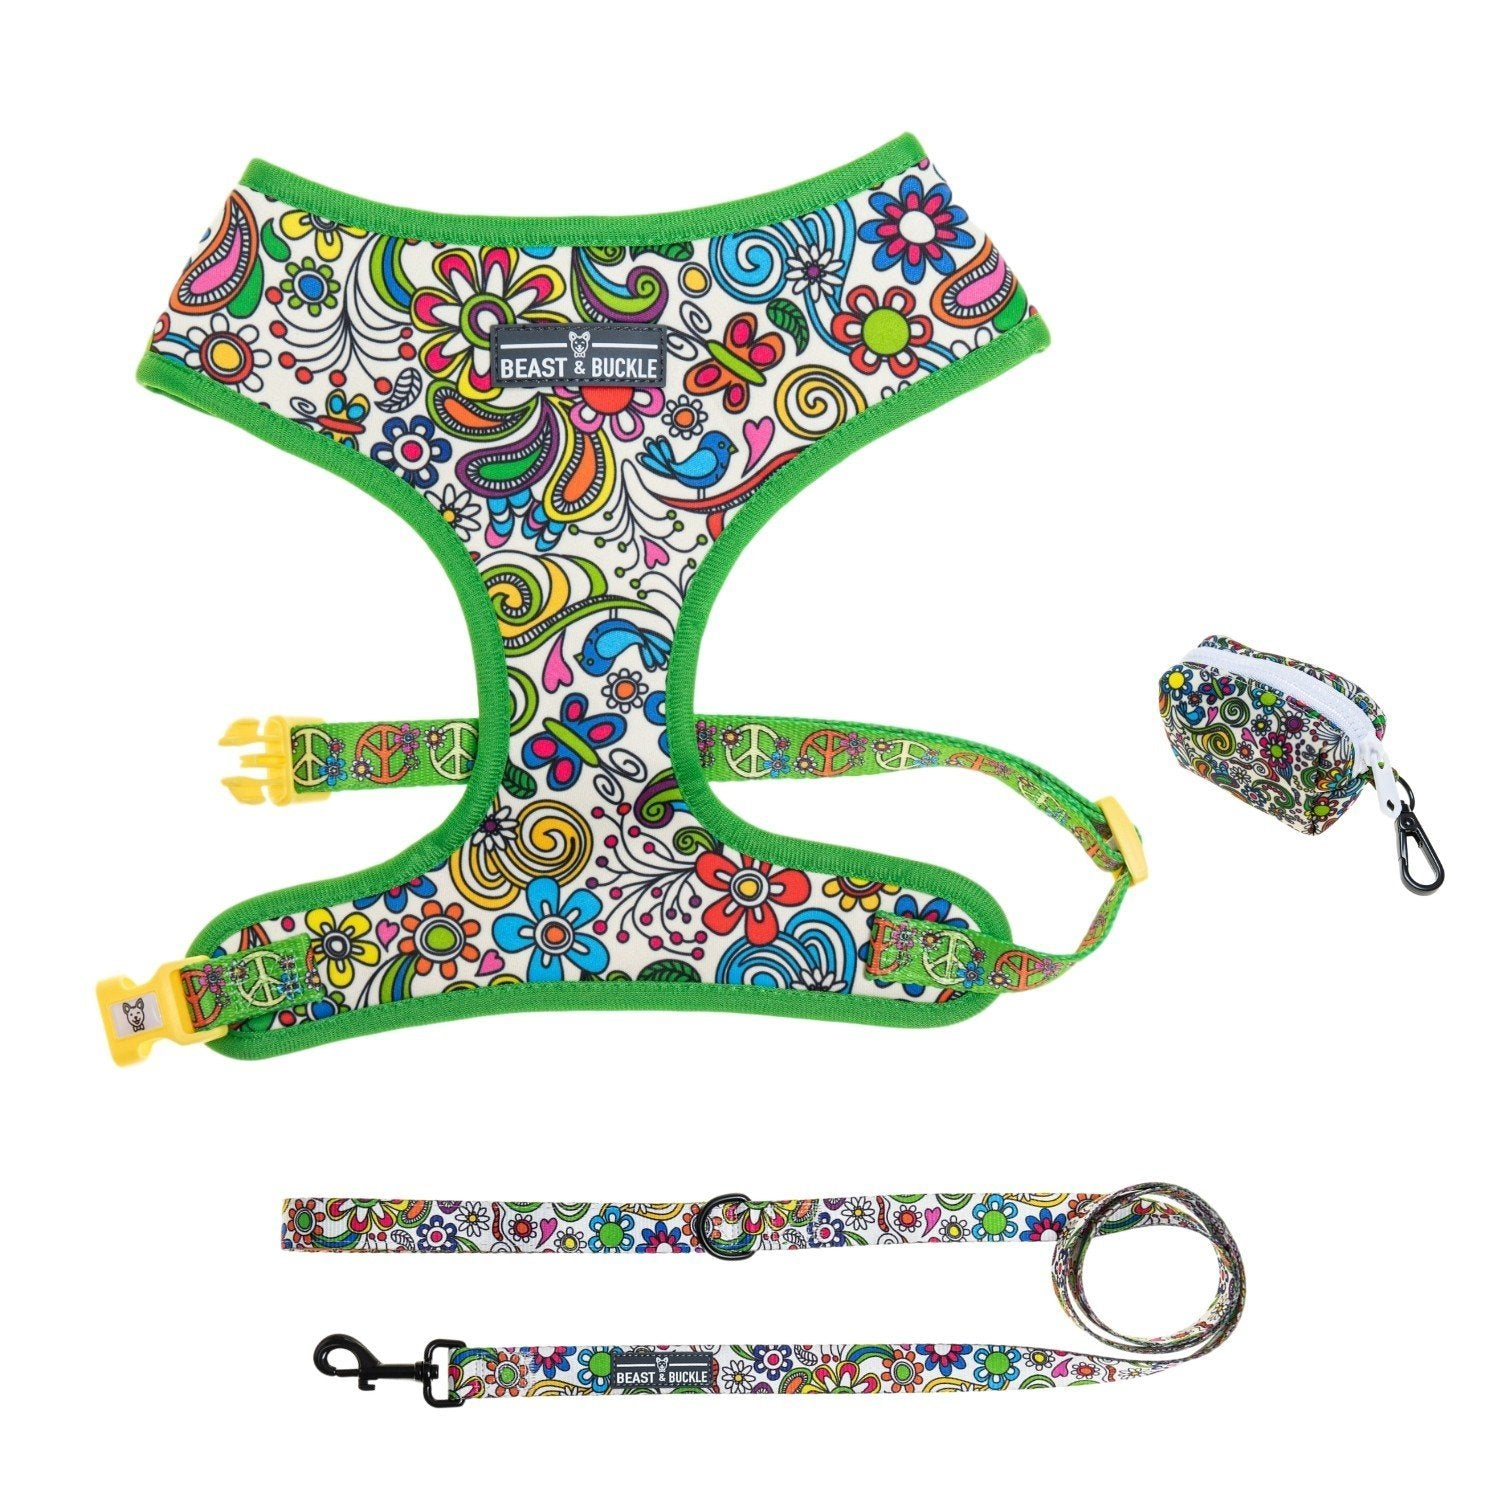 Flower Power Walking Bundle - Beast & Buckle